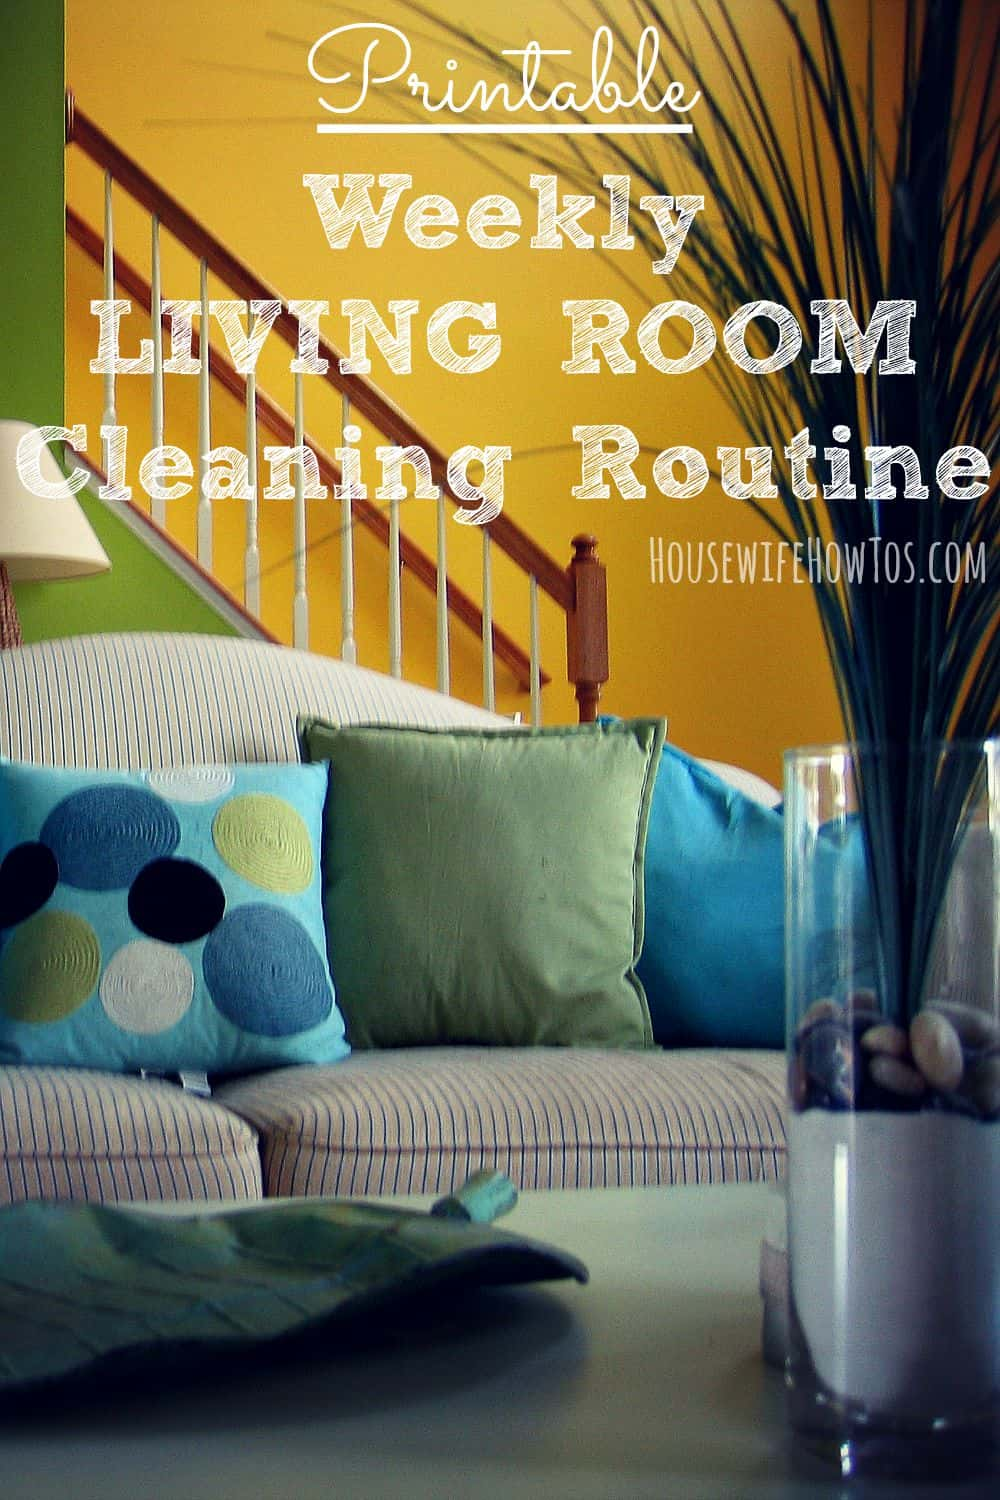 Pin Printable weekly cleaning checklist for living room from HousewifeHowTos